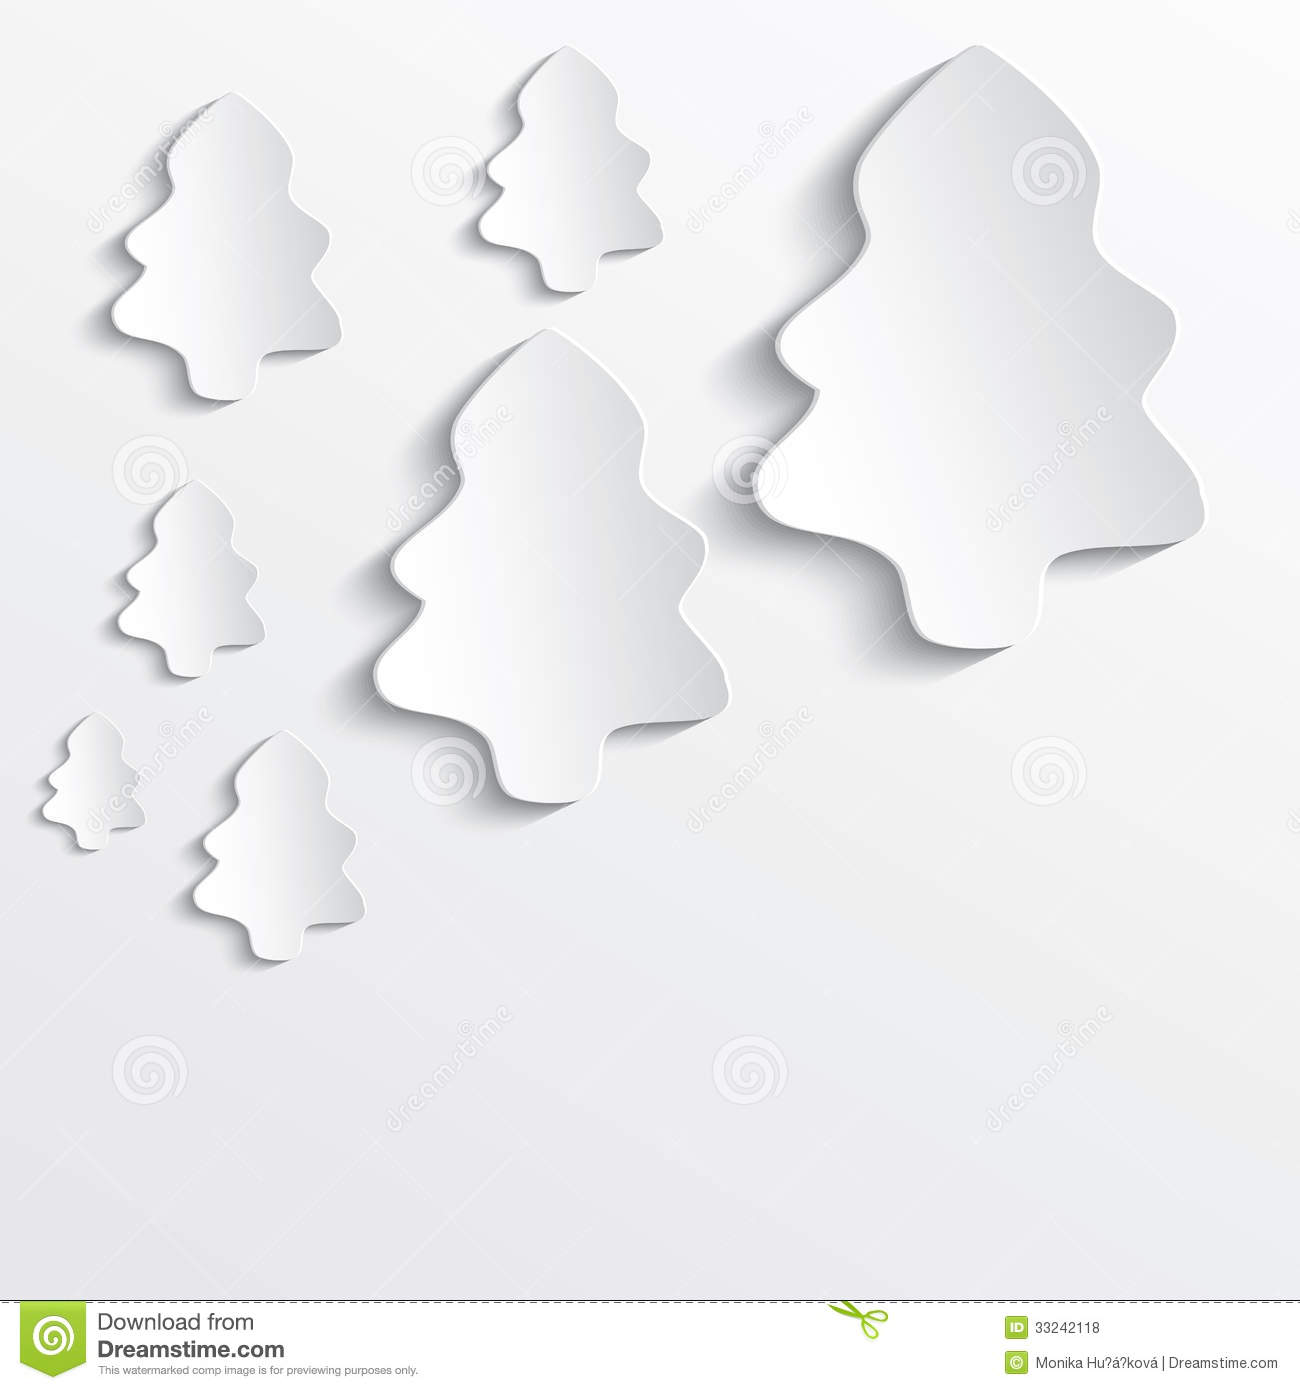 3d Paper Christmas Tree Template.Christmas Tree White Paper 3d Stock Vector Illustration Of Plastic